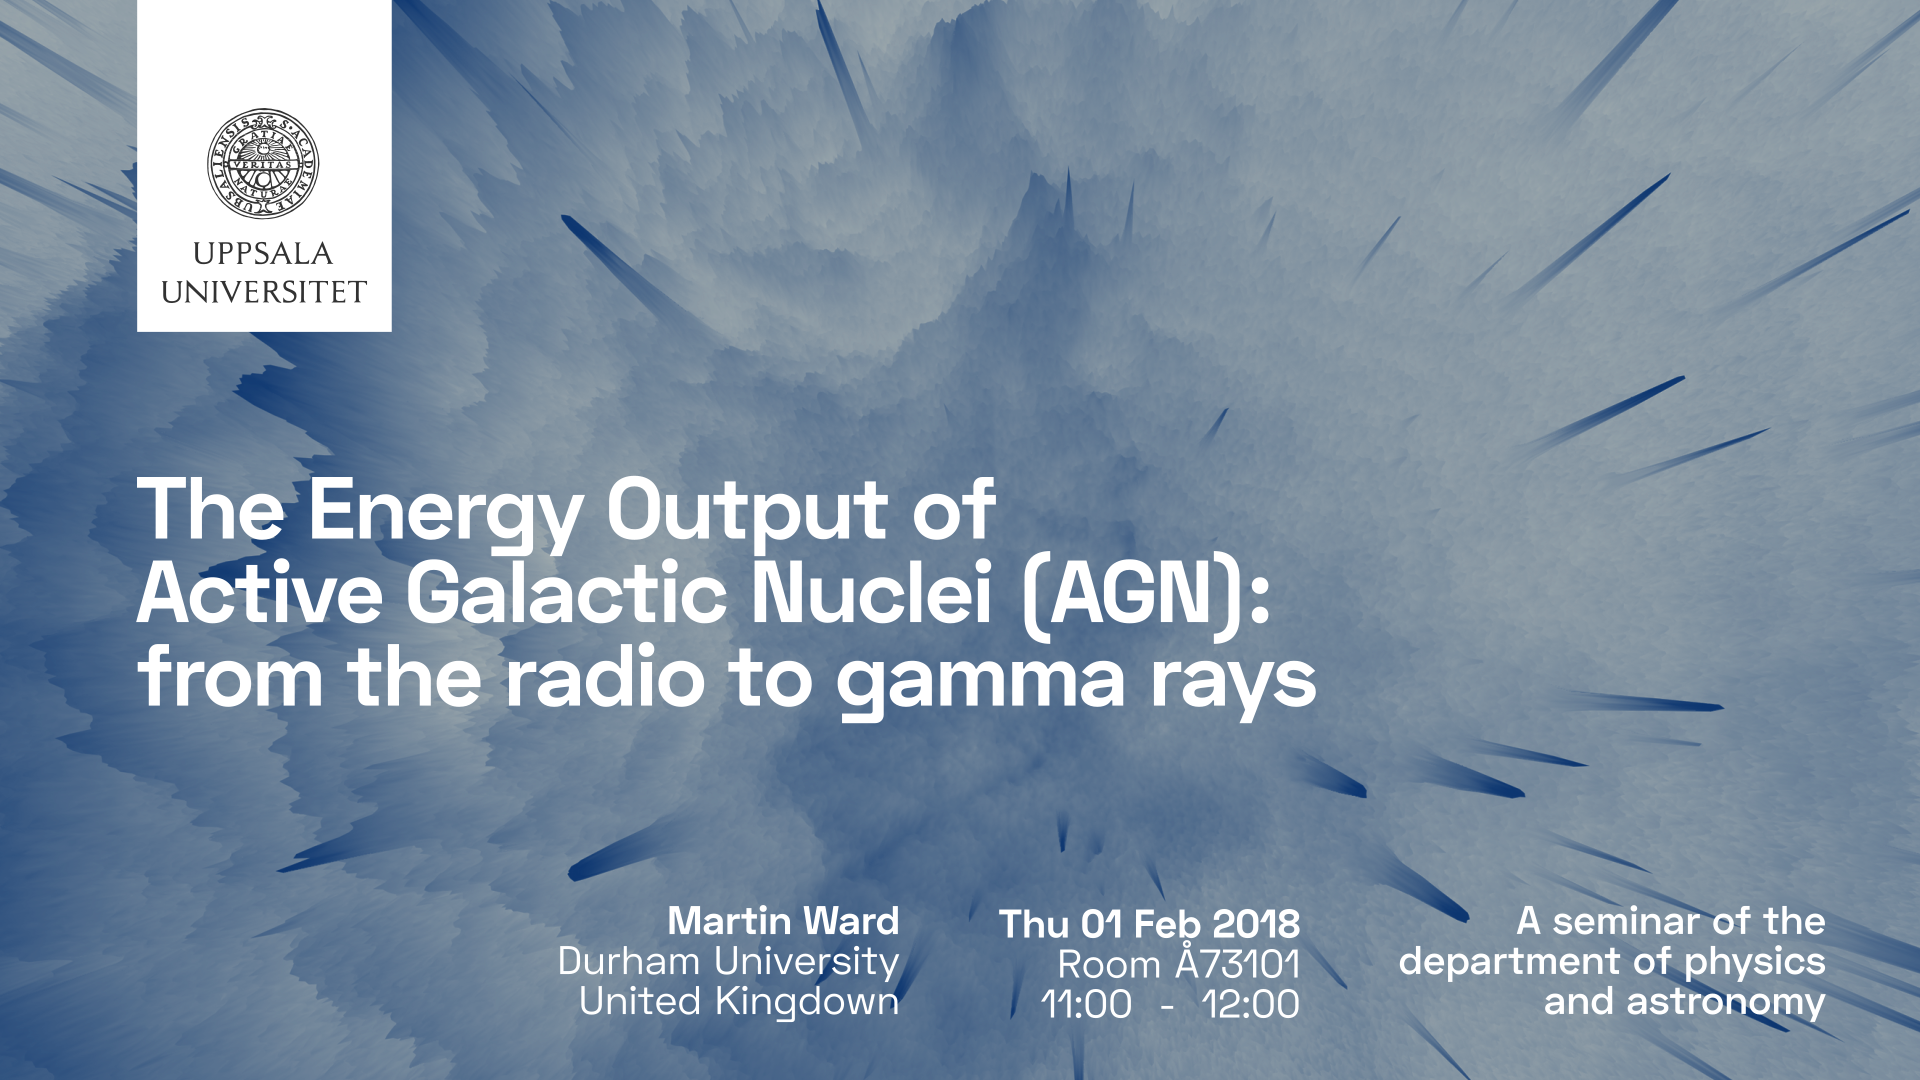 Seminarium: The Energy Output of Active Galactic Nuclei (AGN): from the radio to gamma rays